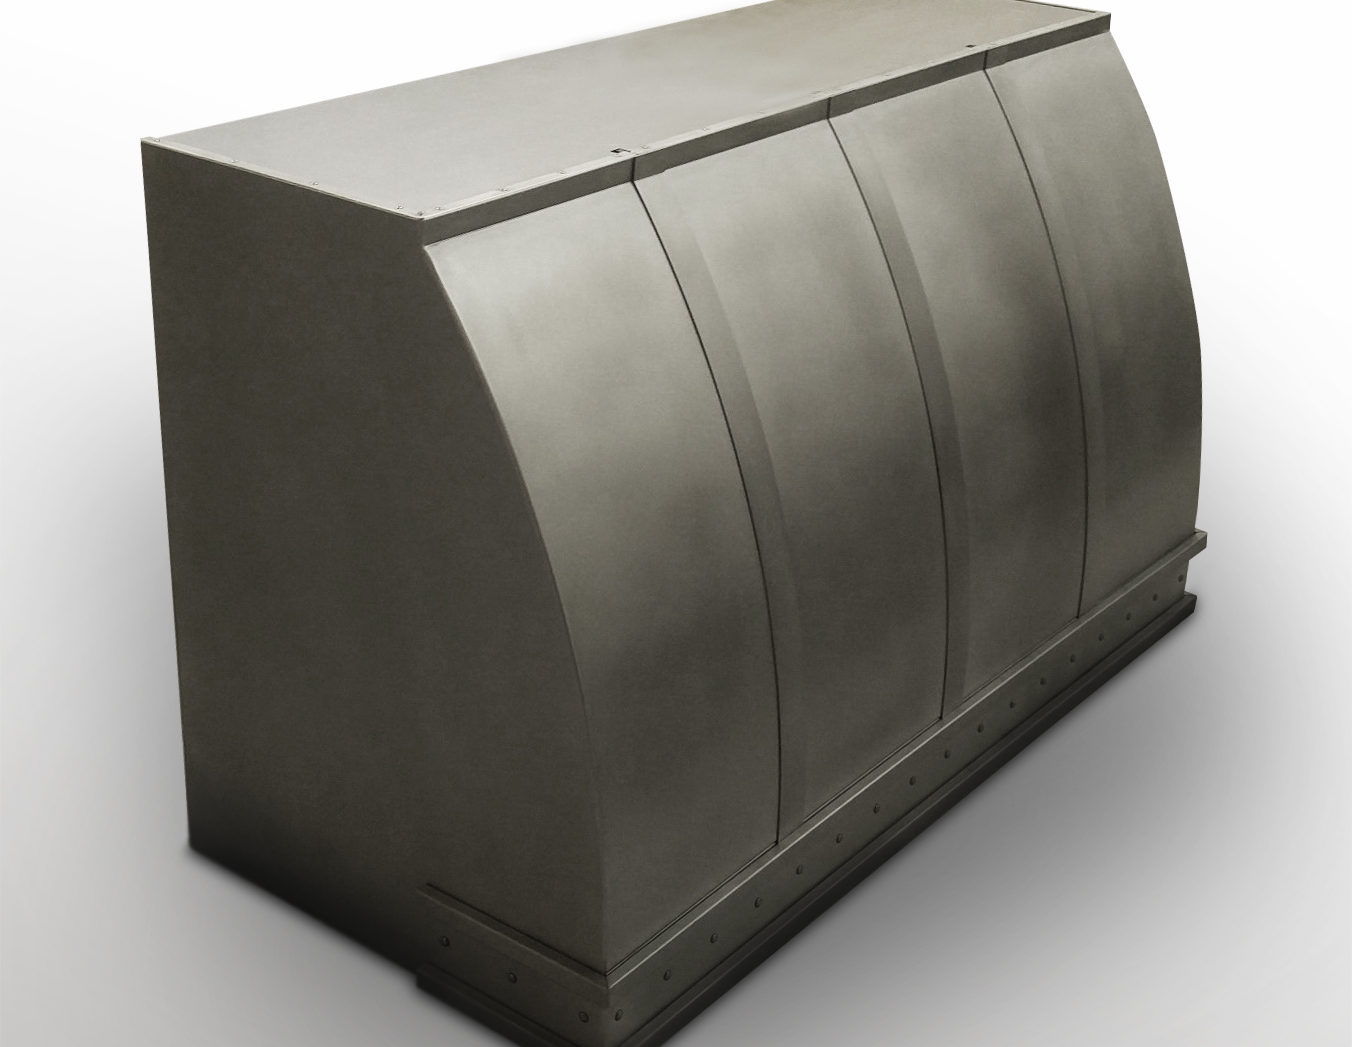 Wall mounted Canopy in non-directional pewter.